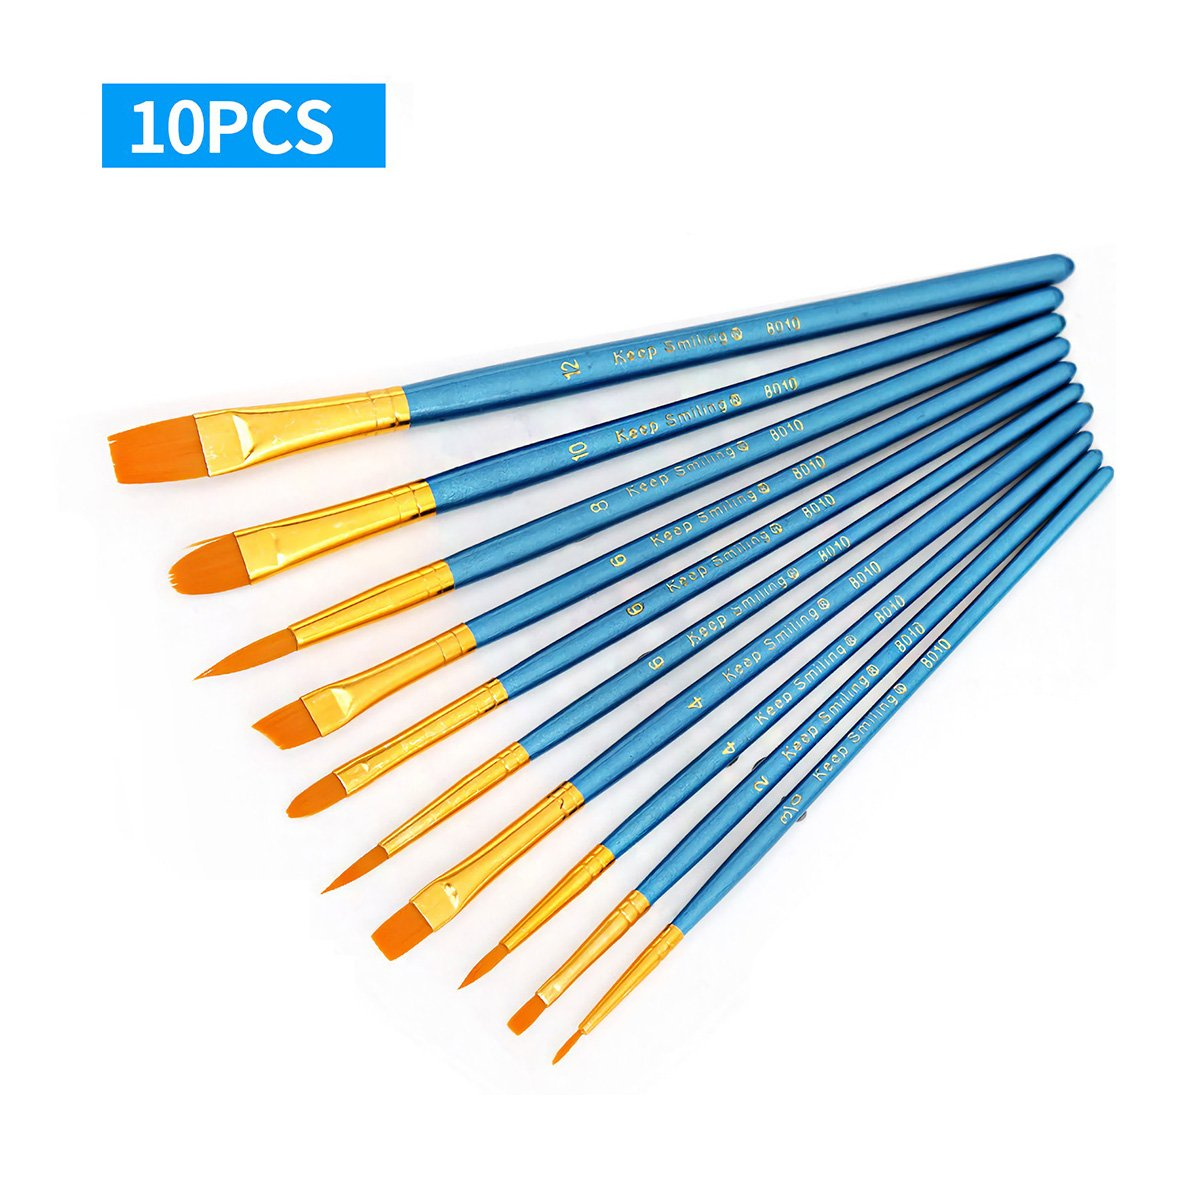 Dpijer 10pcs Artists Paint Brush Set Acrylic Watercolor Different Shape Round Pointed Tip Nylon Hair Painting Brushes